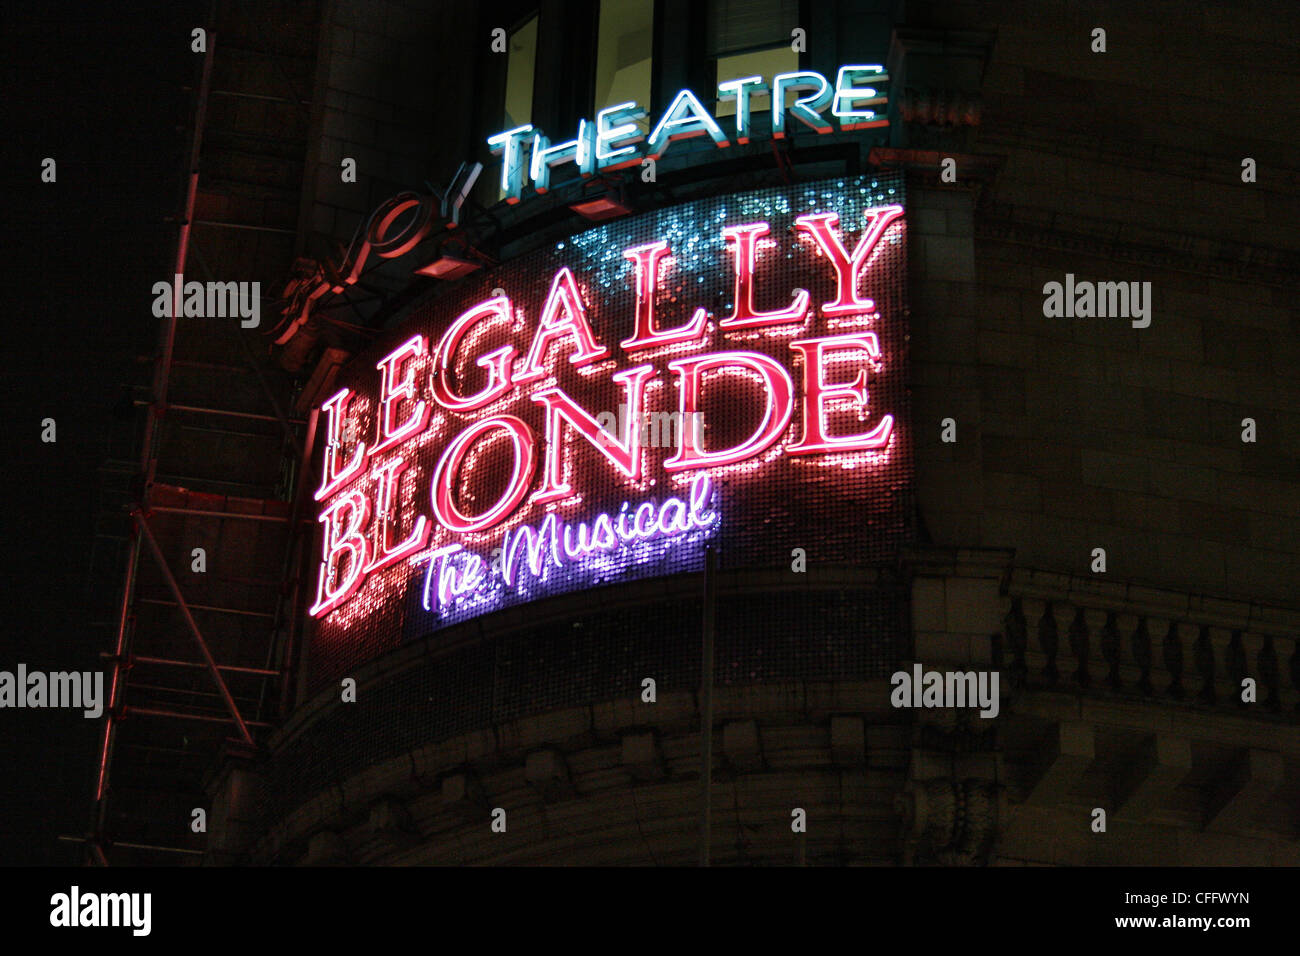 Legally Blonde sign. Savoy Theatre, The Strand, London, United Kingdom, WC2 - Stock Image